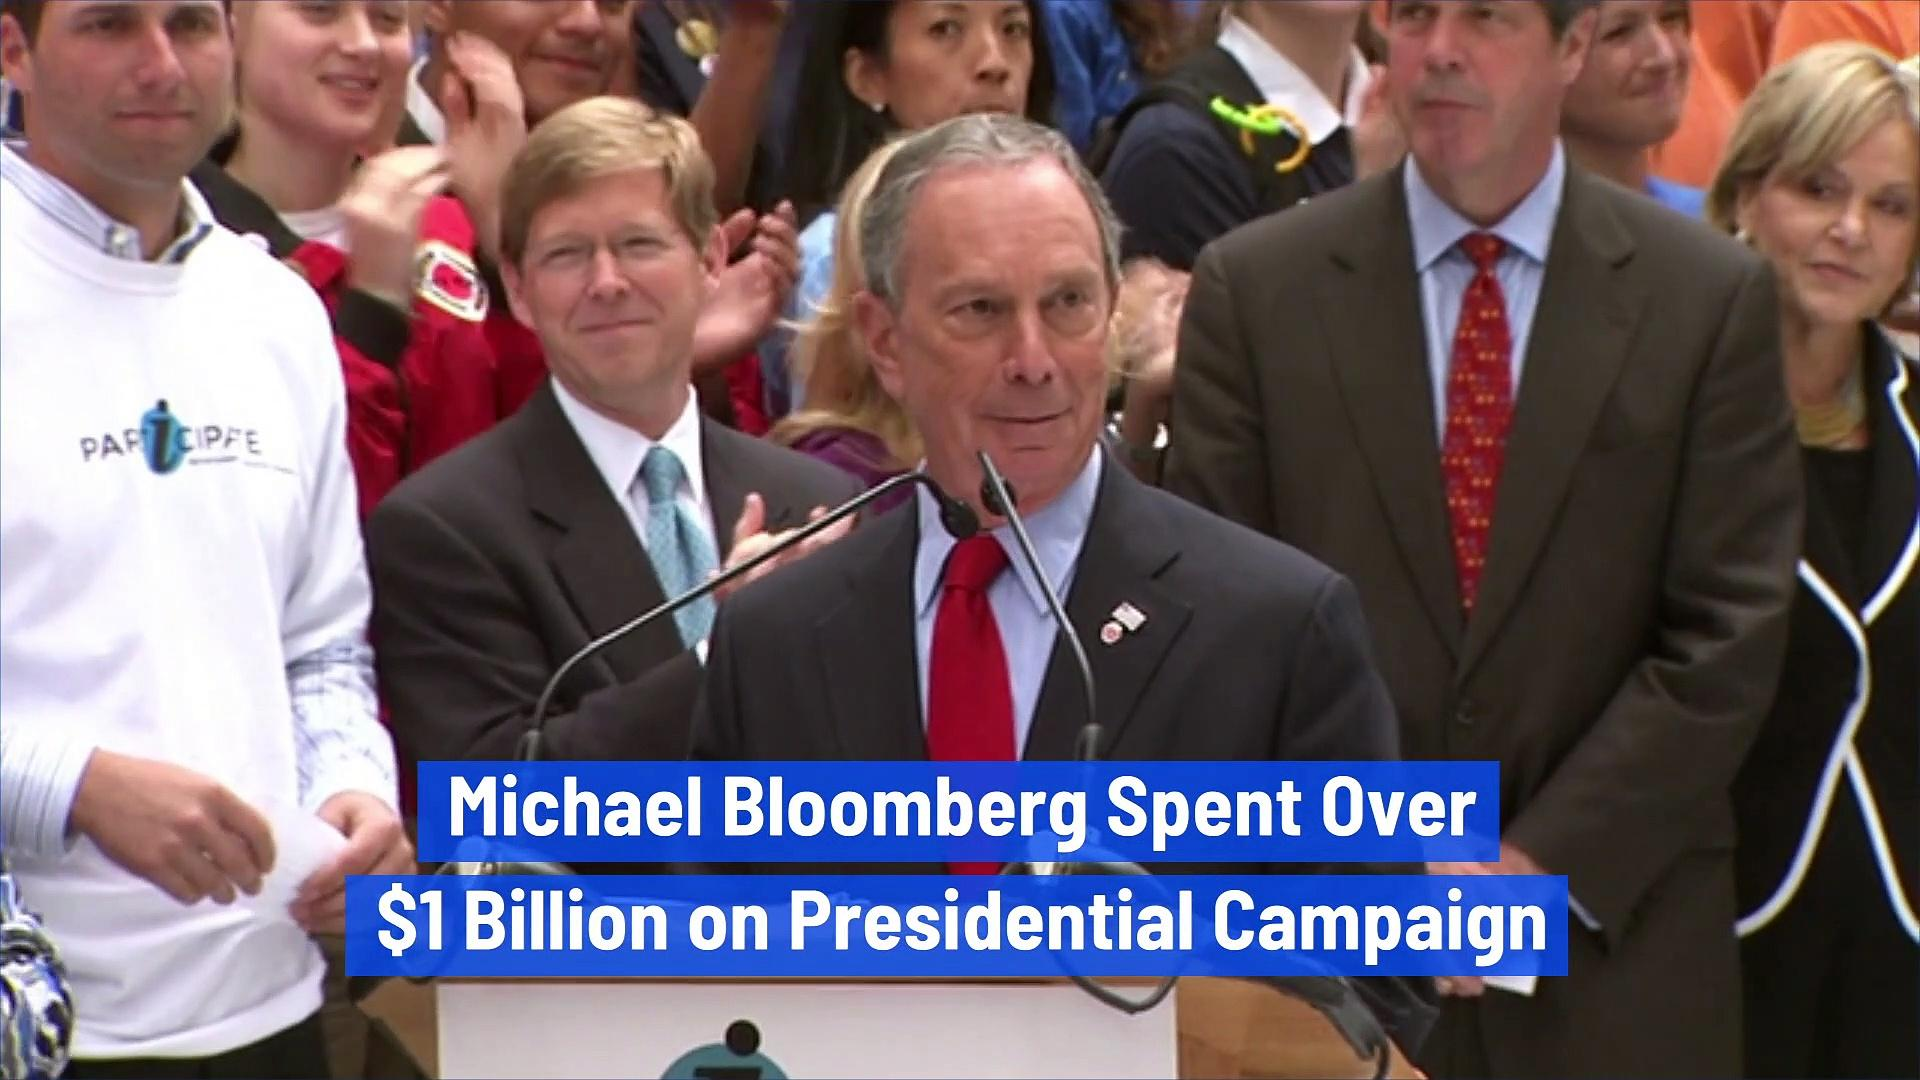 Michael Bloomberg Spent Over $1 Billion on Presidential Campaign